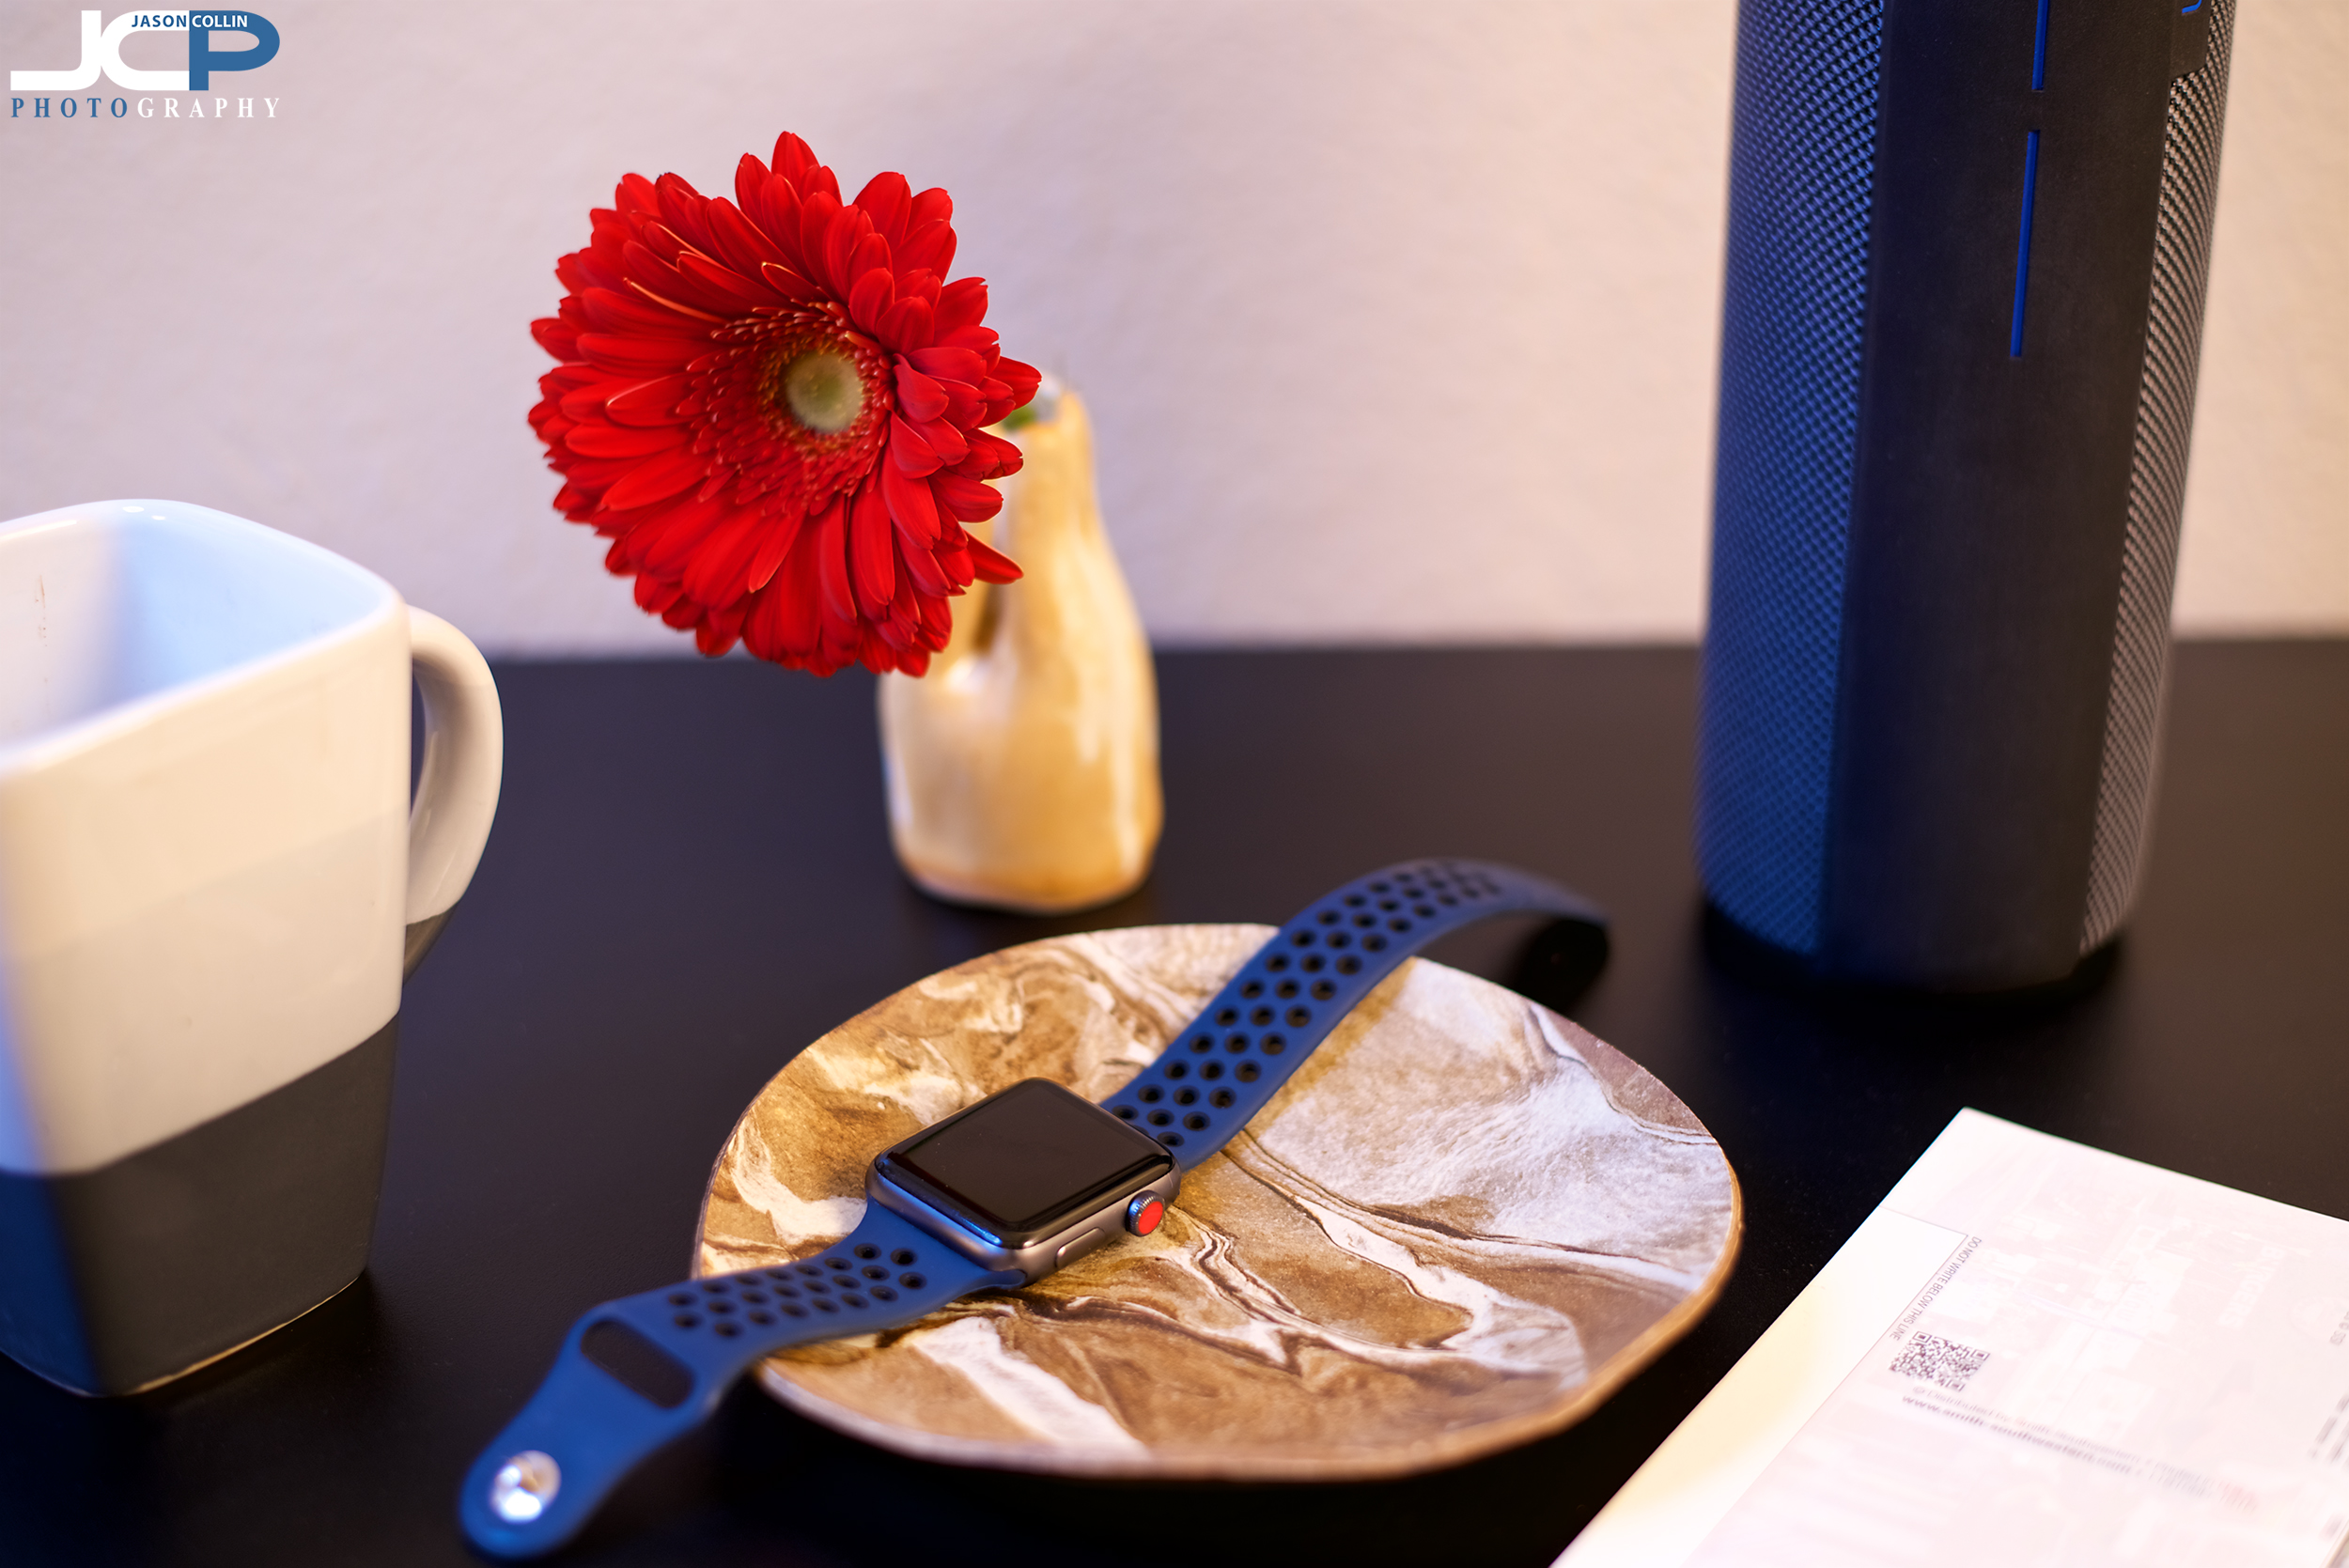 using some of my own items for a ceramic art lifestyle photo